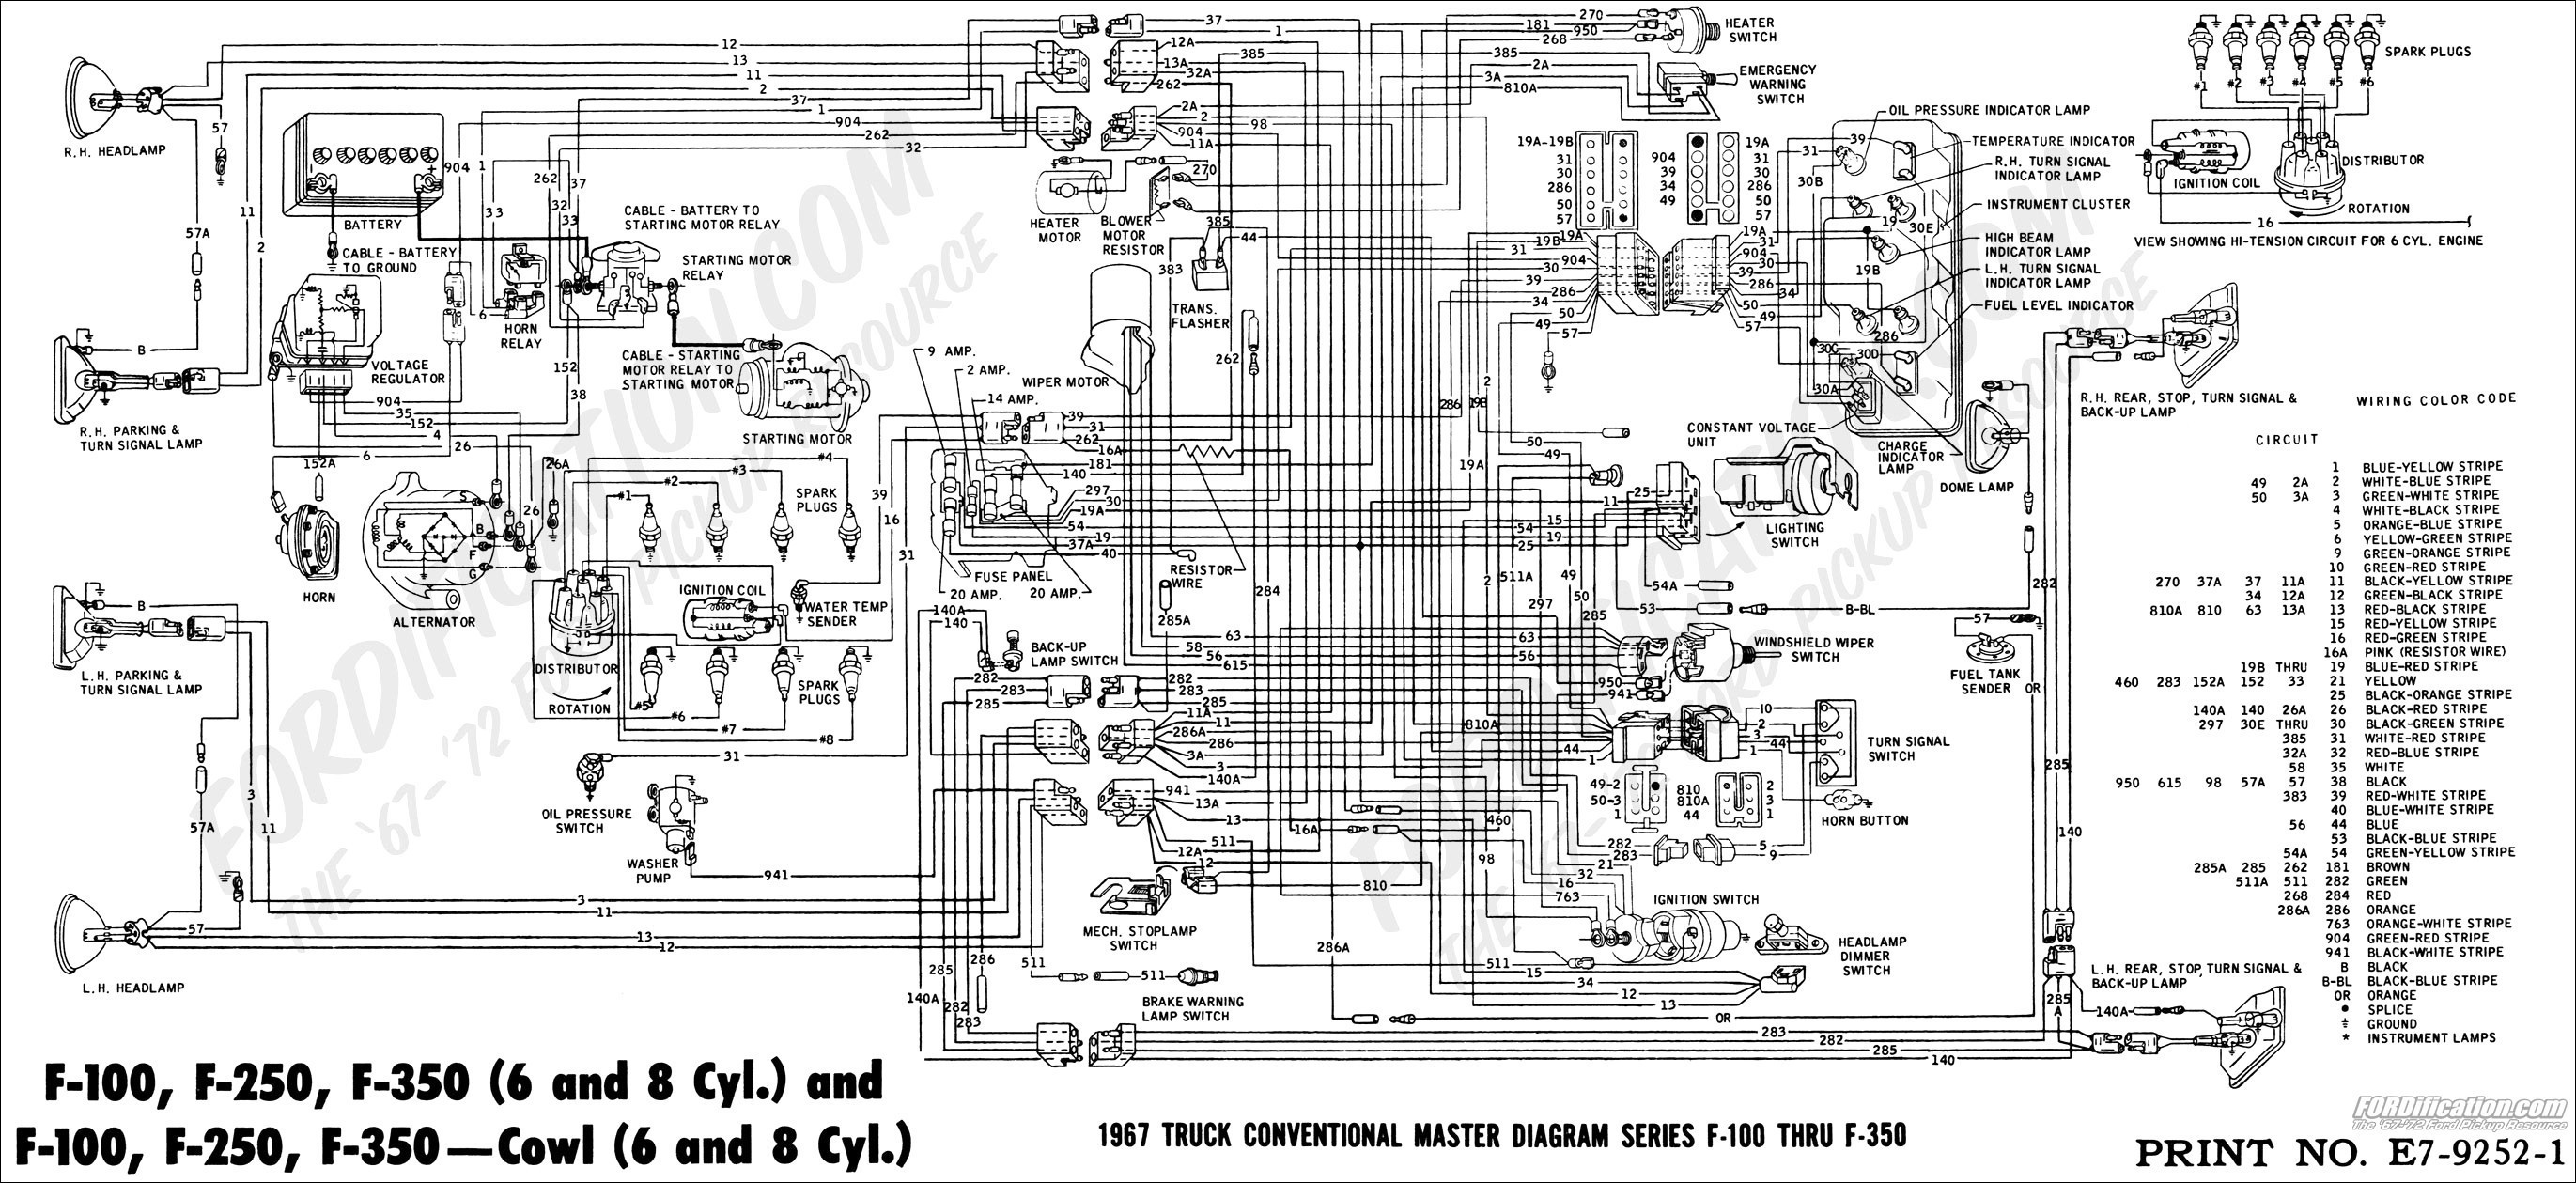 1993 ford F150 Wiring Diagram ford F 150 Alternator Wiring Diagram Furthermore 89 ford F 150 Of 1993 ford F150 Wiring Diagram